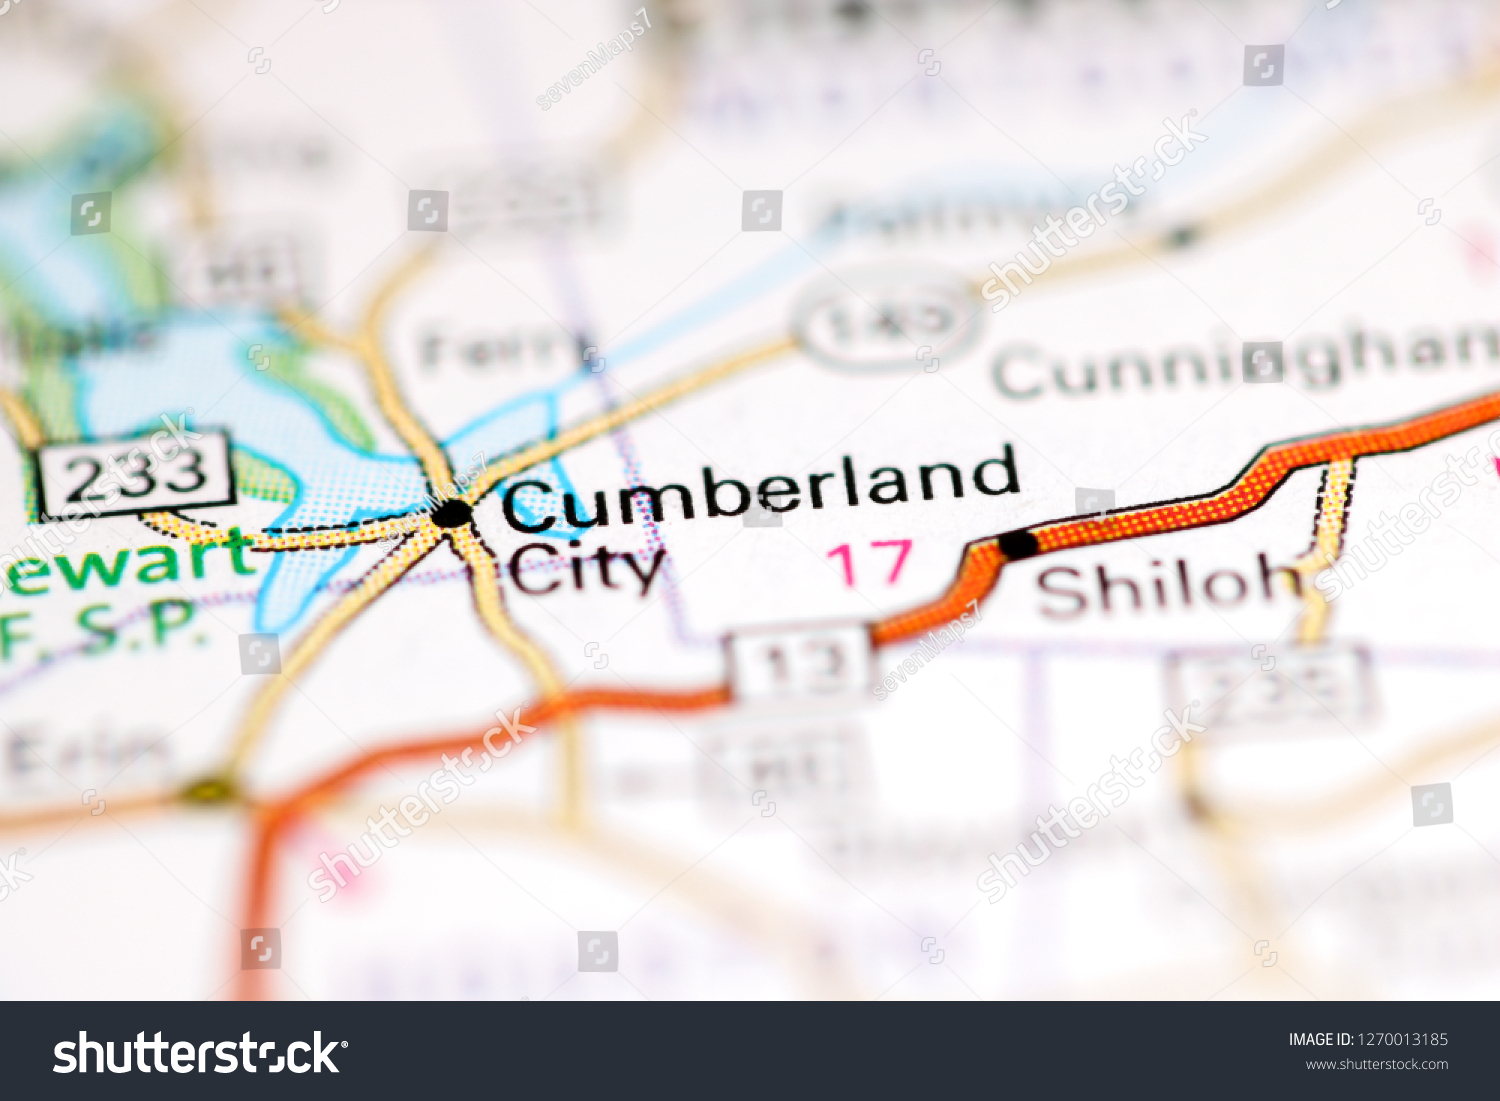 berland City Tennessee USA On Geography Stock Photo (Edit Now ... on